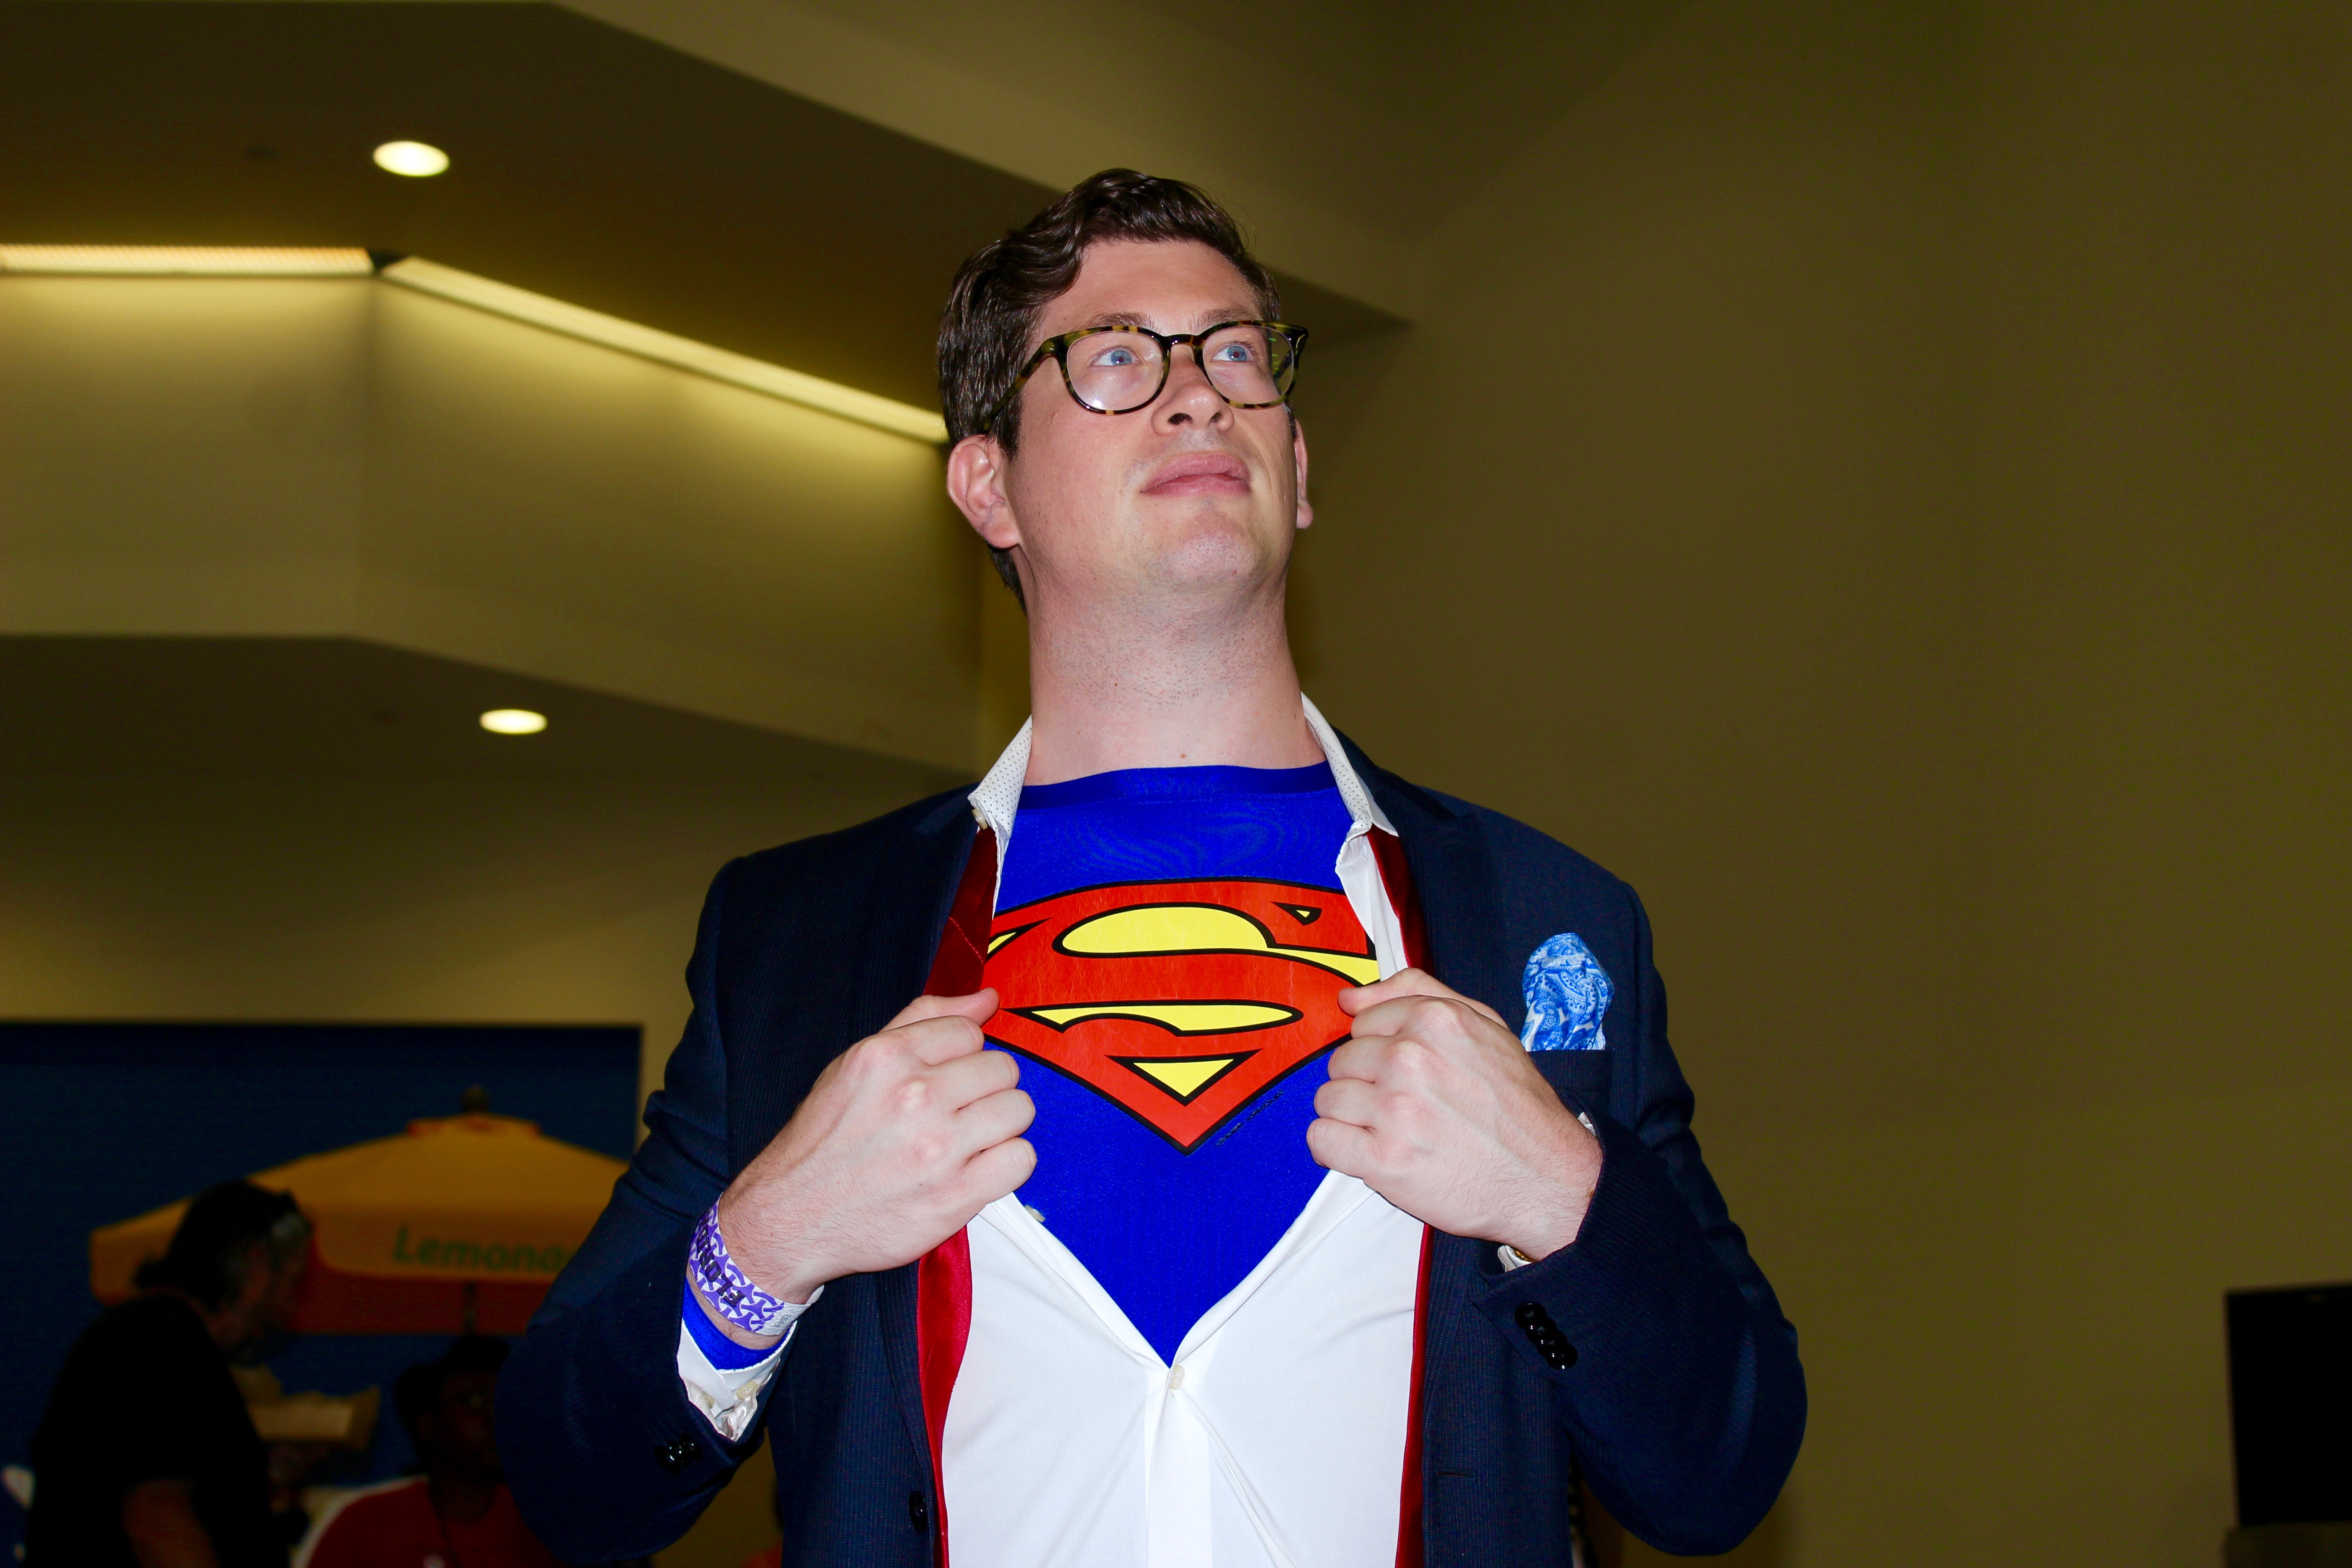 A cosplayer dressed as Clark Kent/Superman.